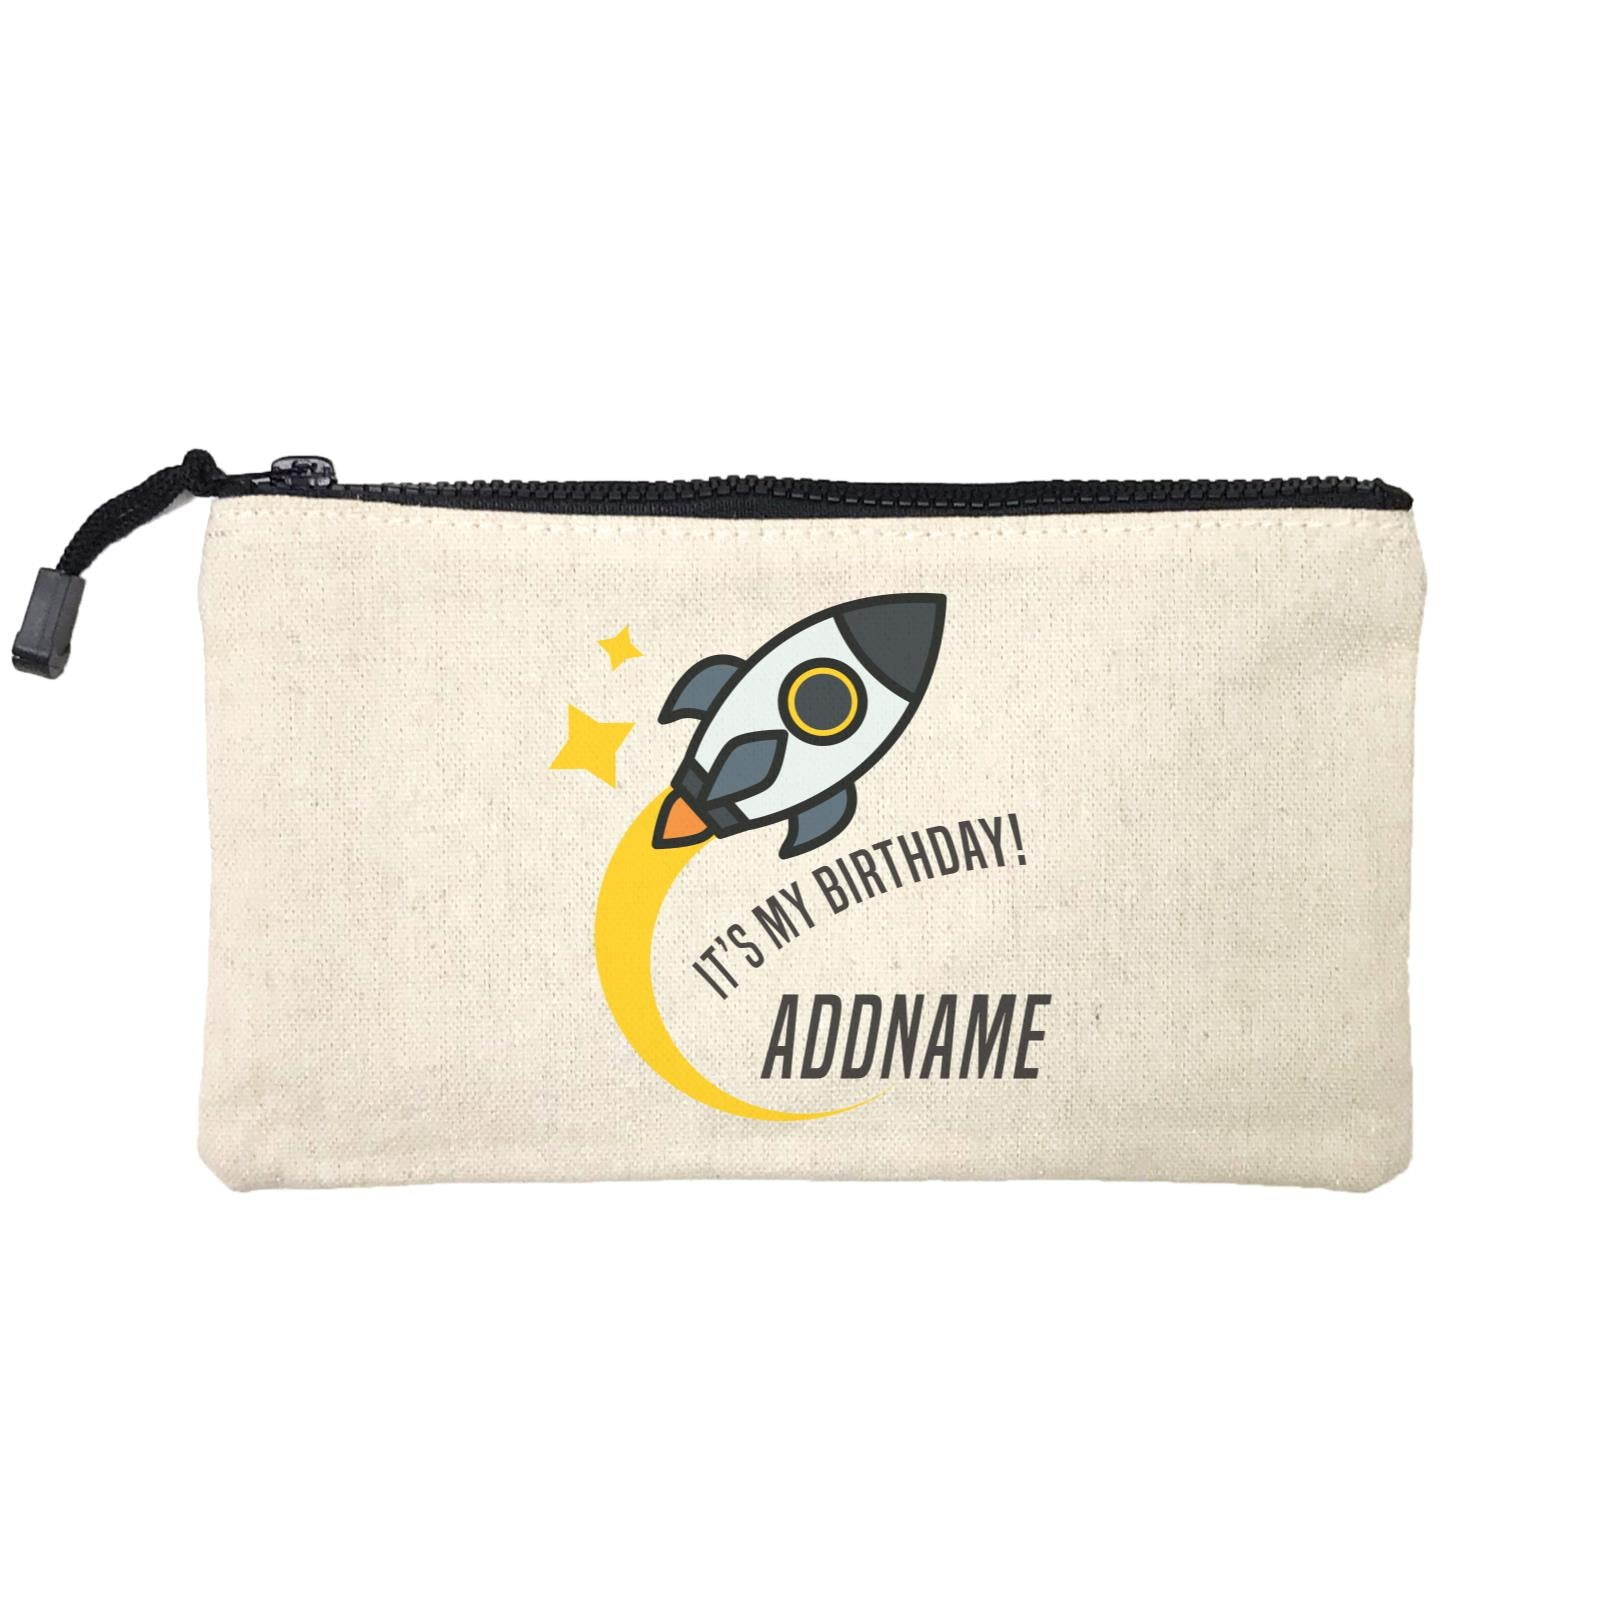 Birthday Flying Rocket To Galaxy It's My Birthday Addname Mini Accessories Stationery Pouch